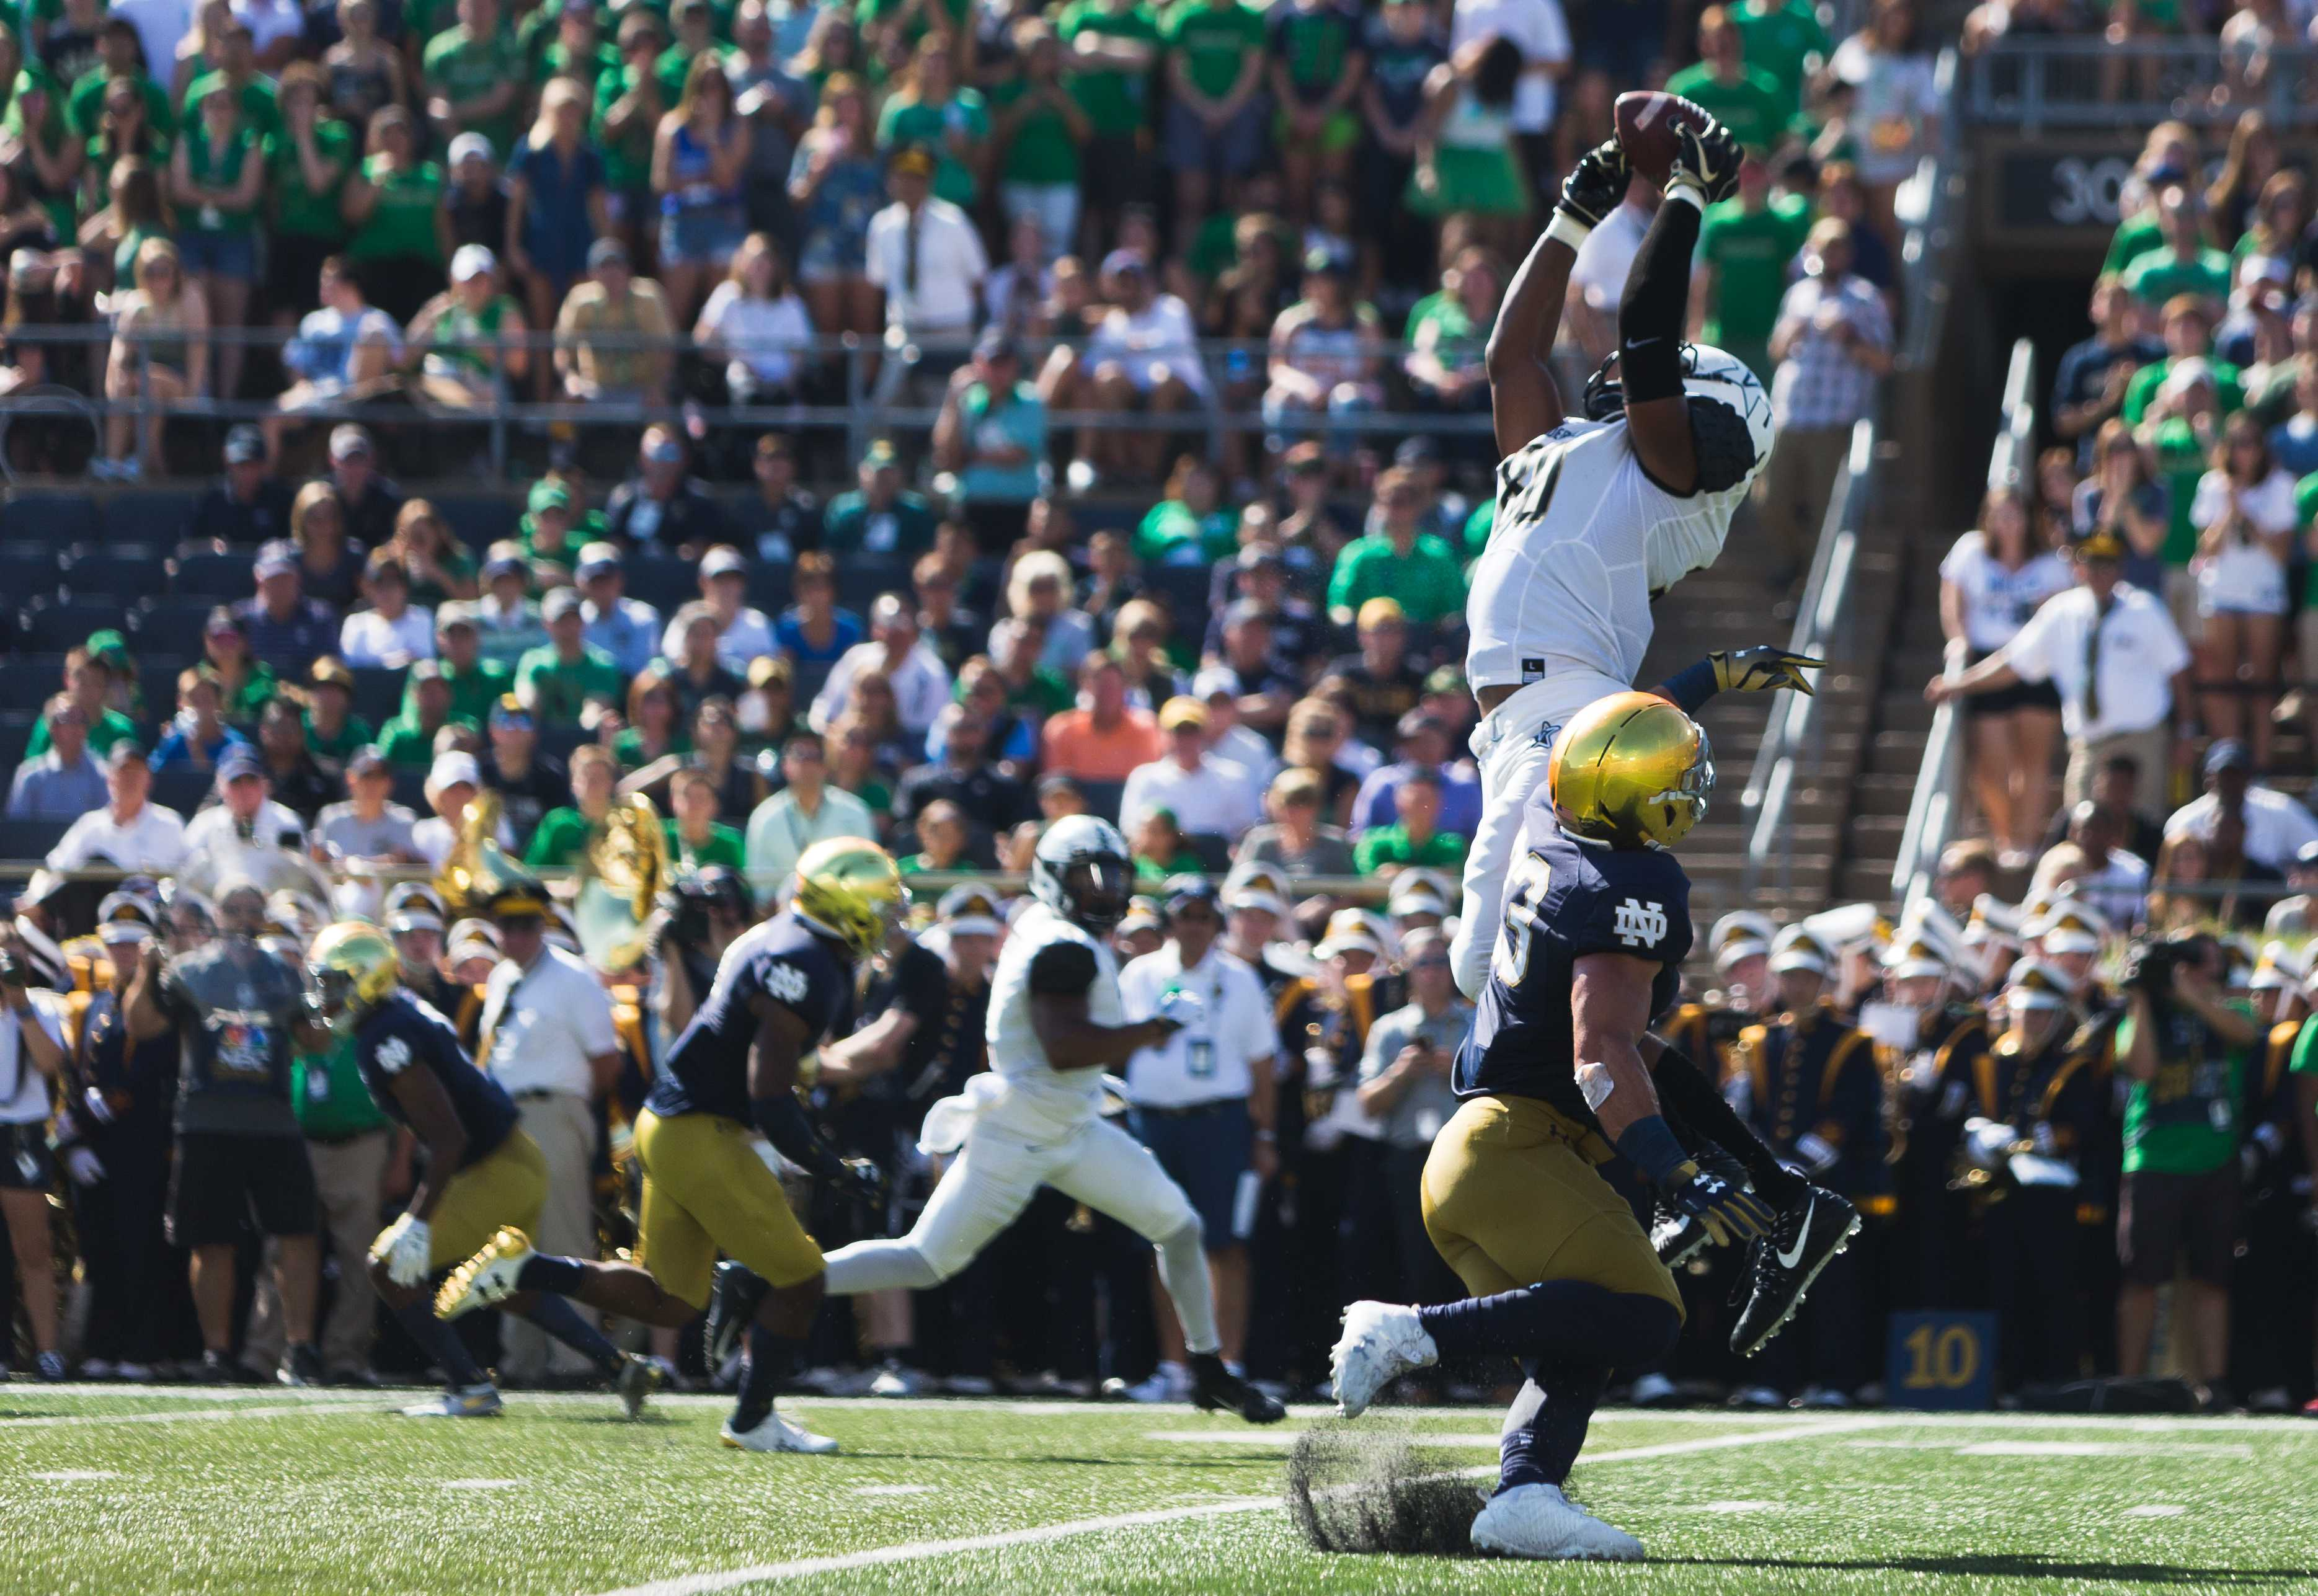 Vanderbilt Commodores at Notre Dame Fighting Irish, September 15, 2018. Photo by Hunter Long/Vanderbilt Hustler